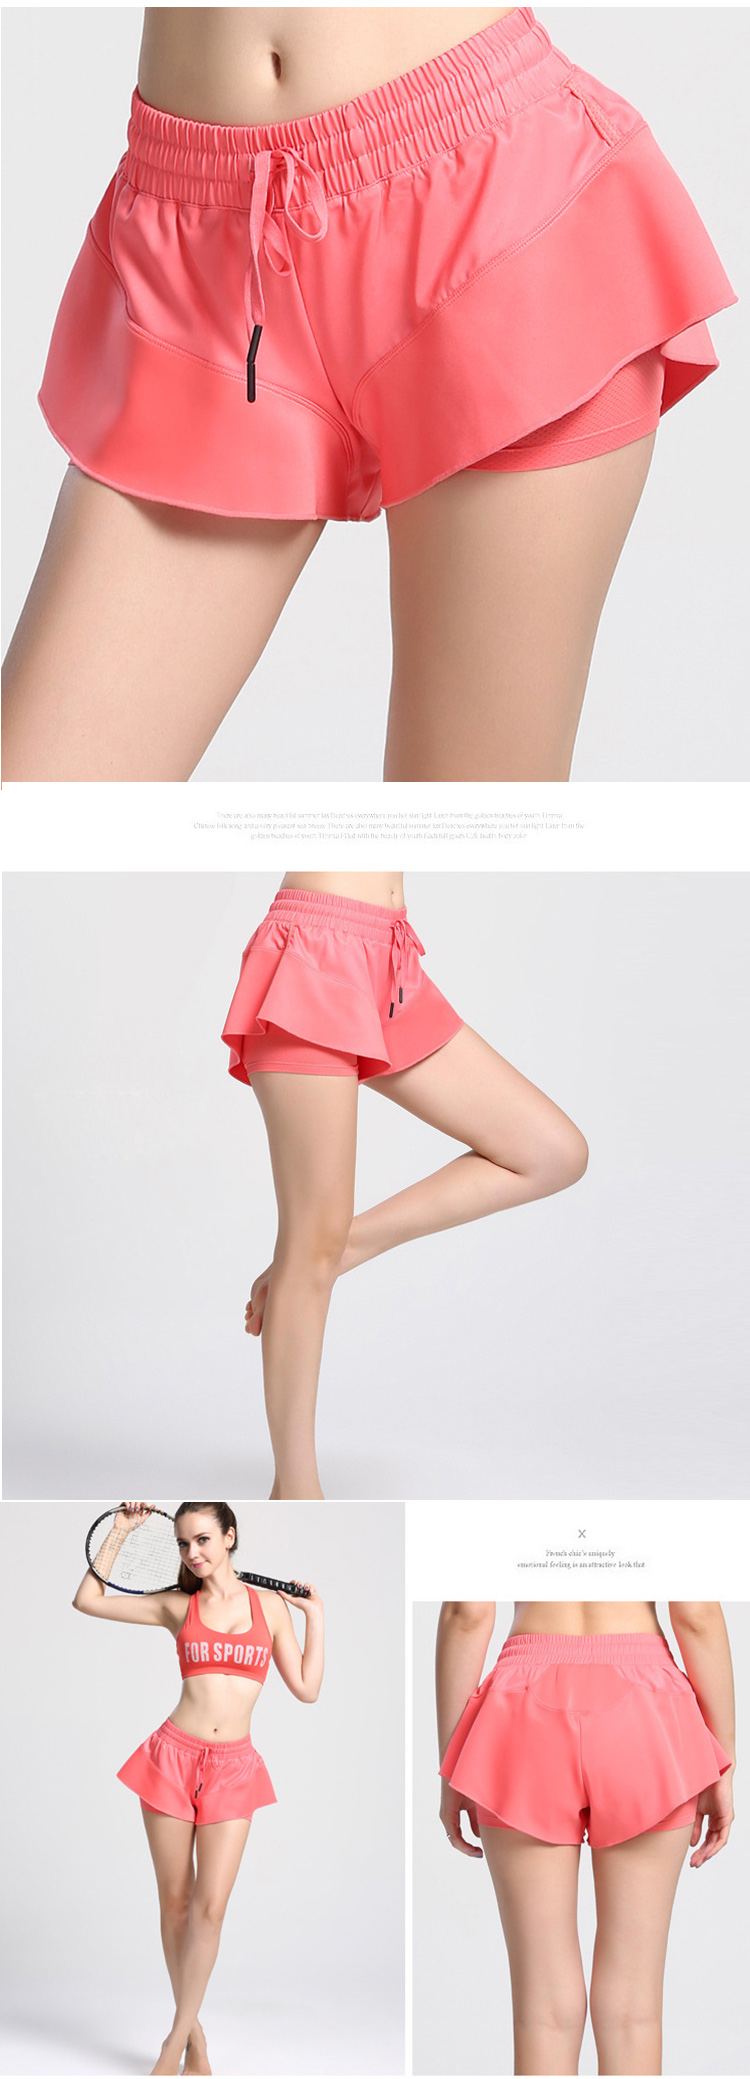 FASTORM Women Running Sports Shorts 2 In 1 Fitness Tennis Skort Gym Jogging  Athletic Tight Skirts Sportswear For Dropshipping